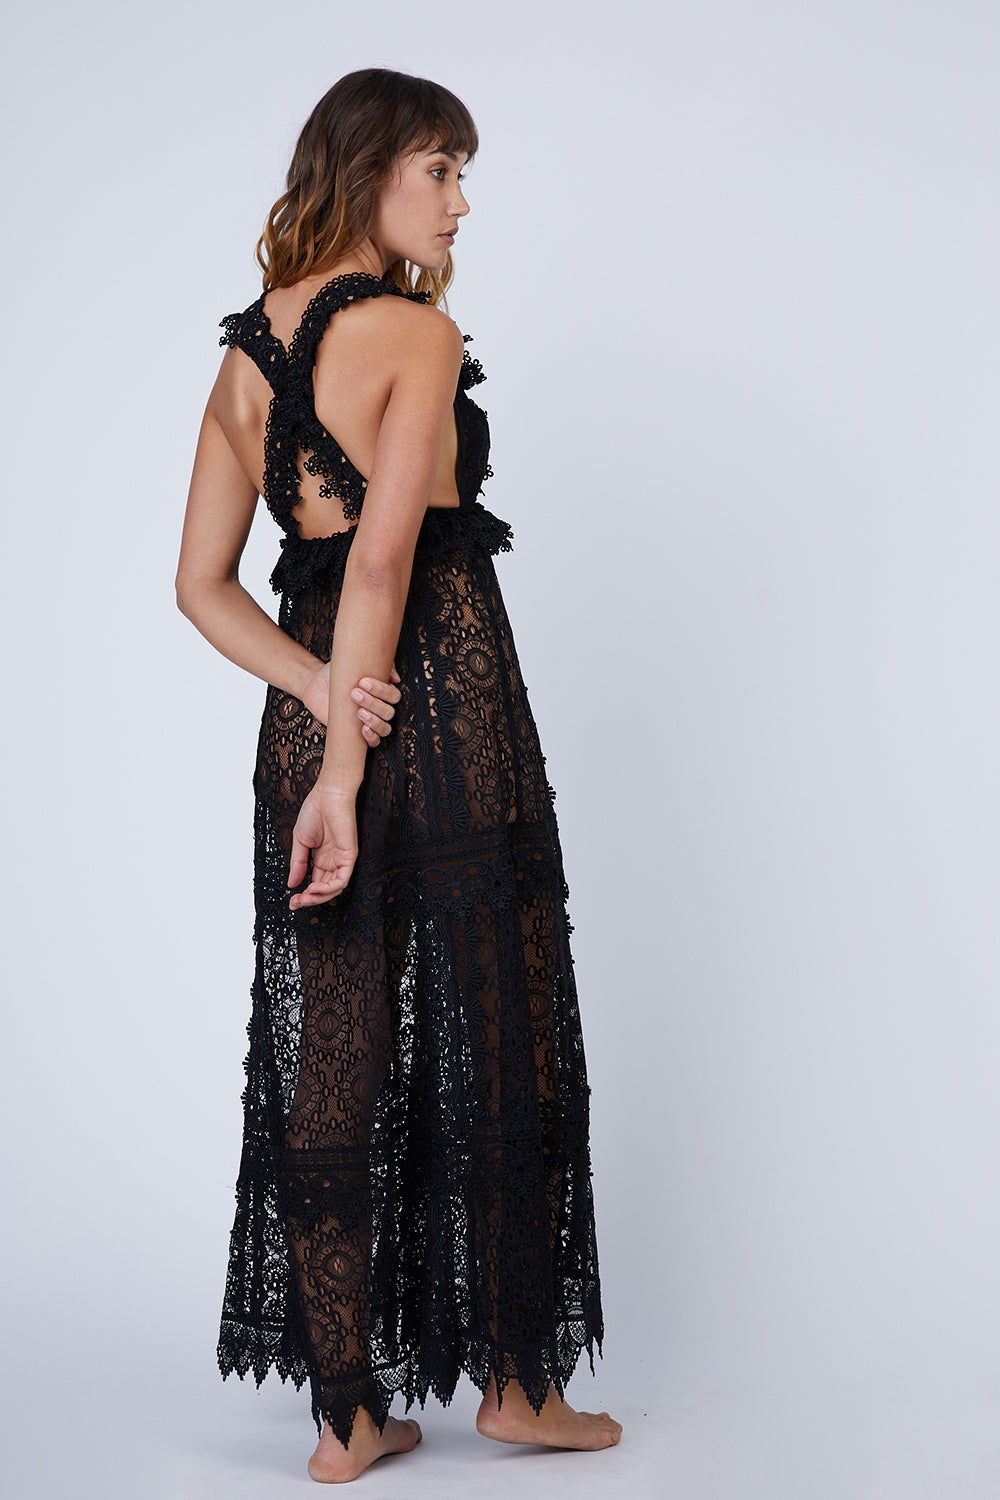 WAIMARI Chic Escape Sheer Lace Maxi Dress - Black Dress | Black| Waimari Chic Escape Sheer Lace Maxi Dress - Black Maxi dress V neckline  criss cross back straps All over lace detail  Ruffle detail Back View